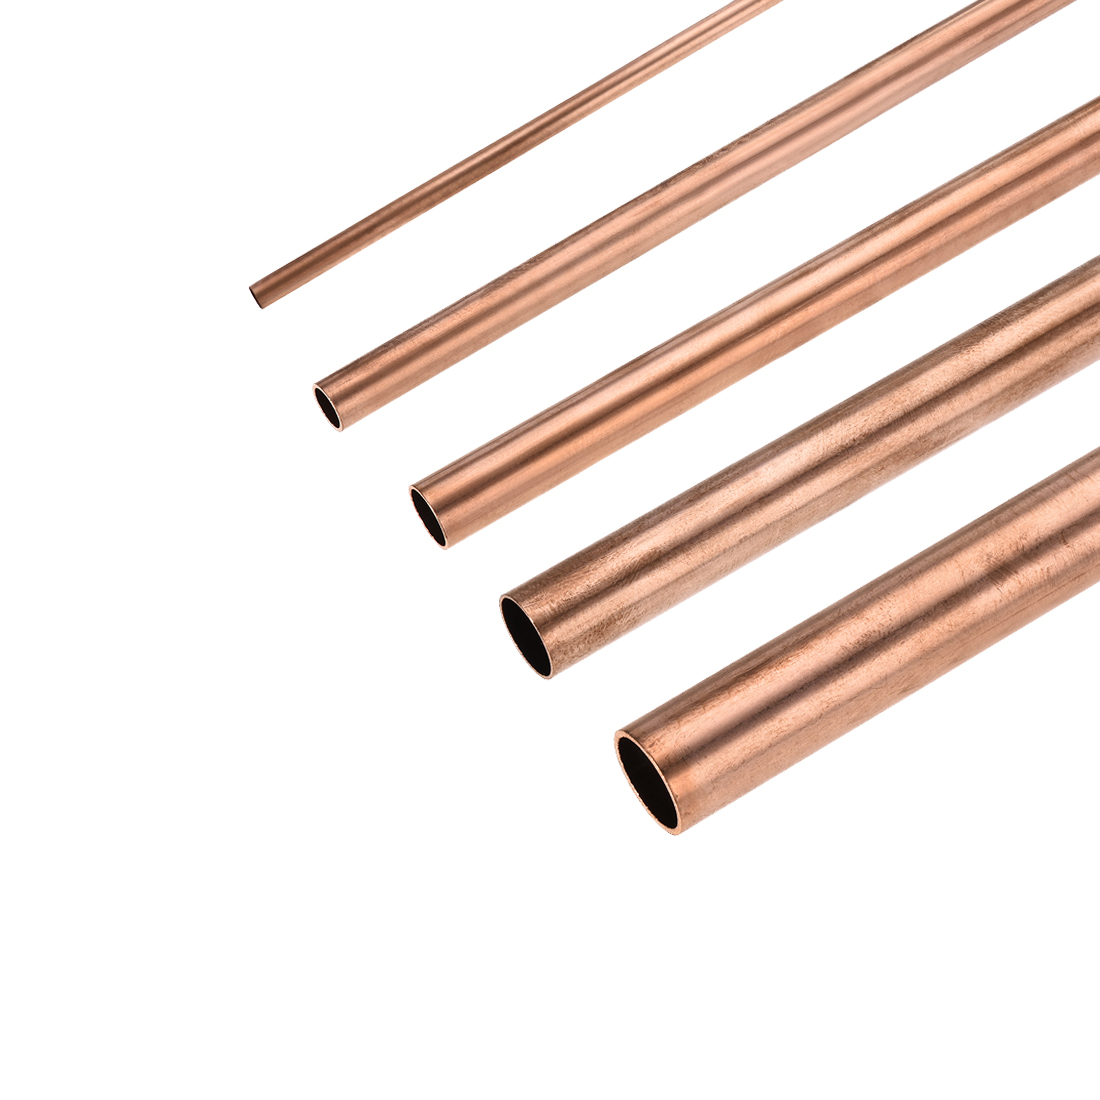 Uxcell 2 Pcs Copper Round Tube 7mm-30mm ID Hollow Straight Pipe Tubing Smooth Surface Length 100mm/200mm/300mm